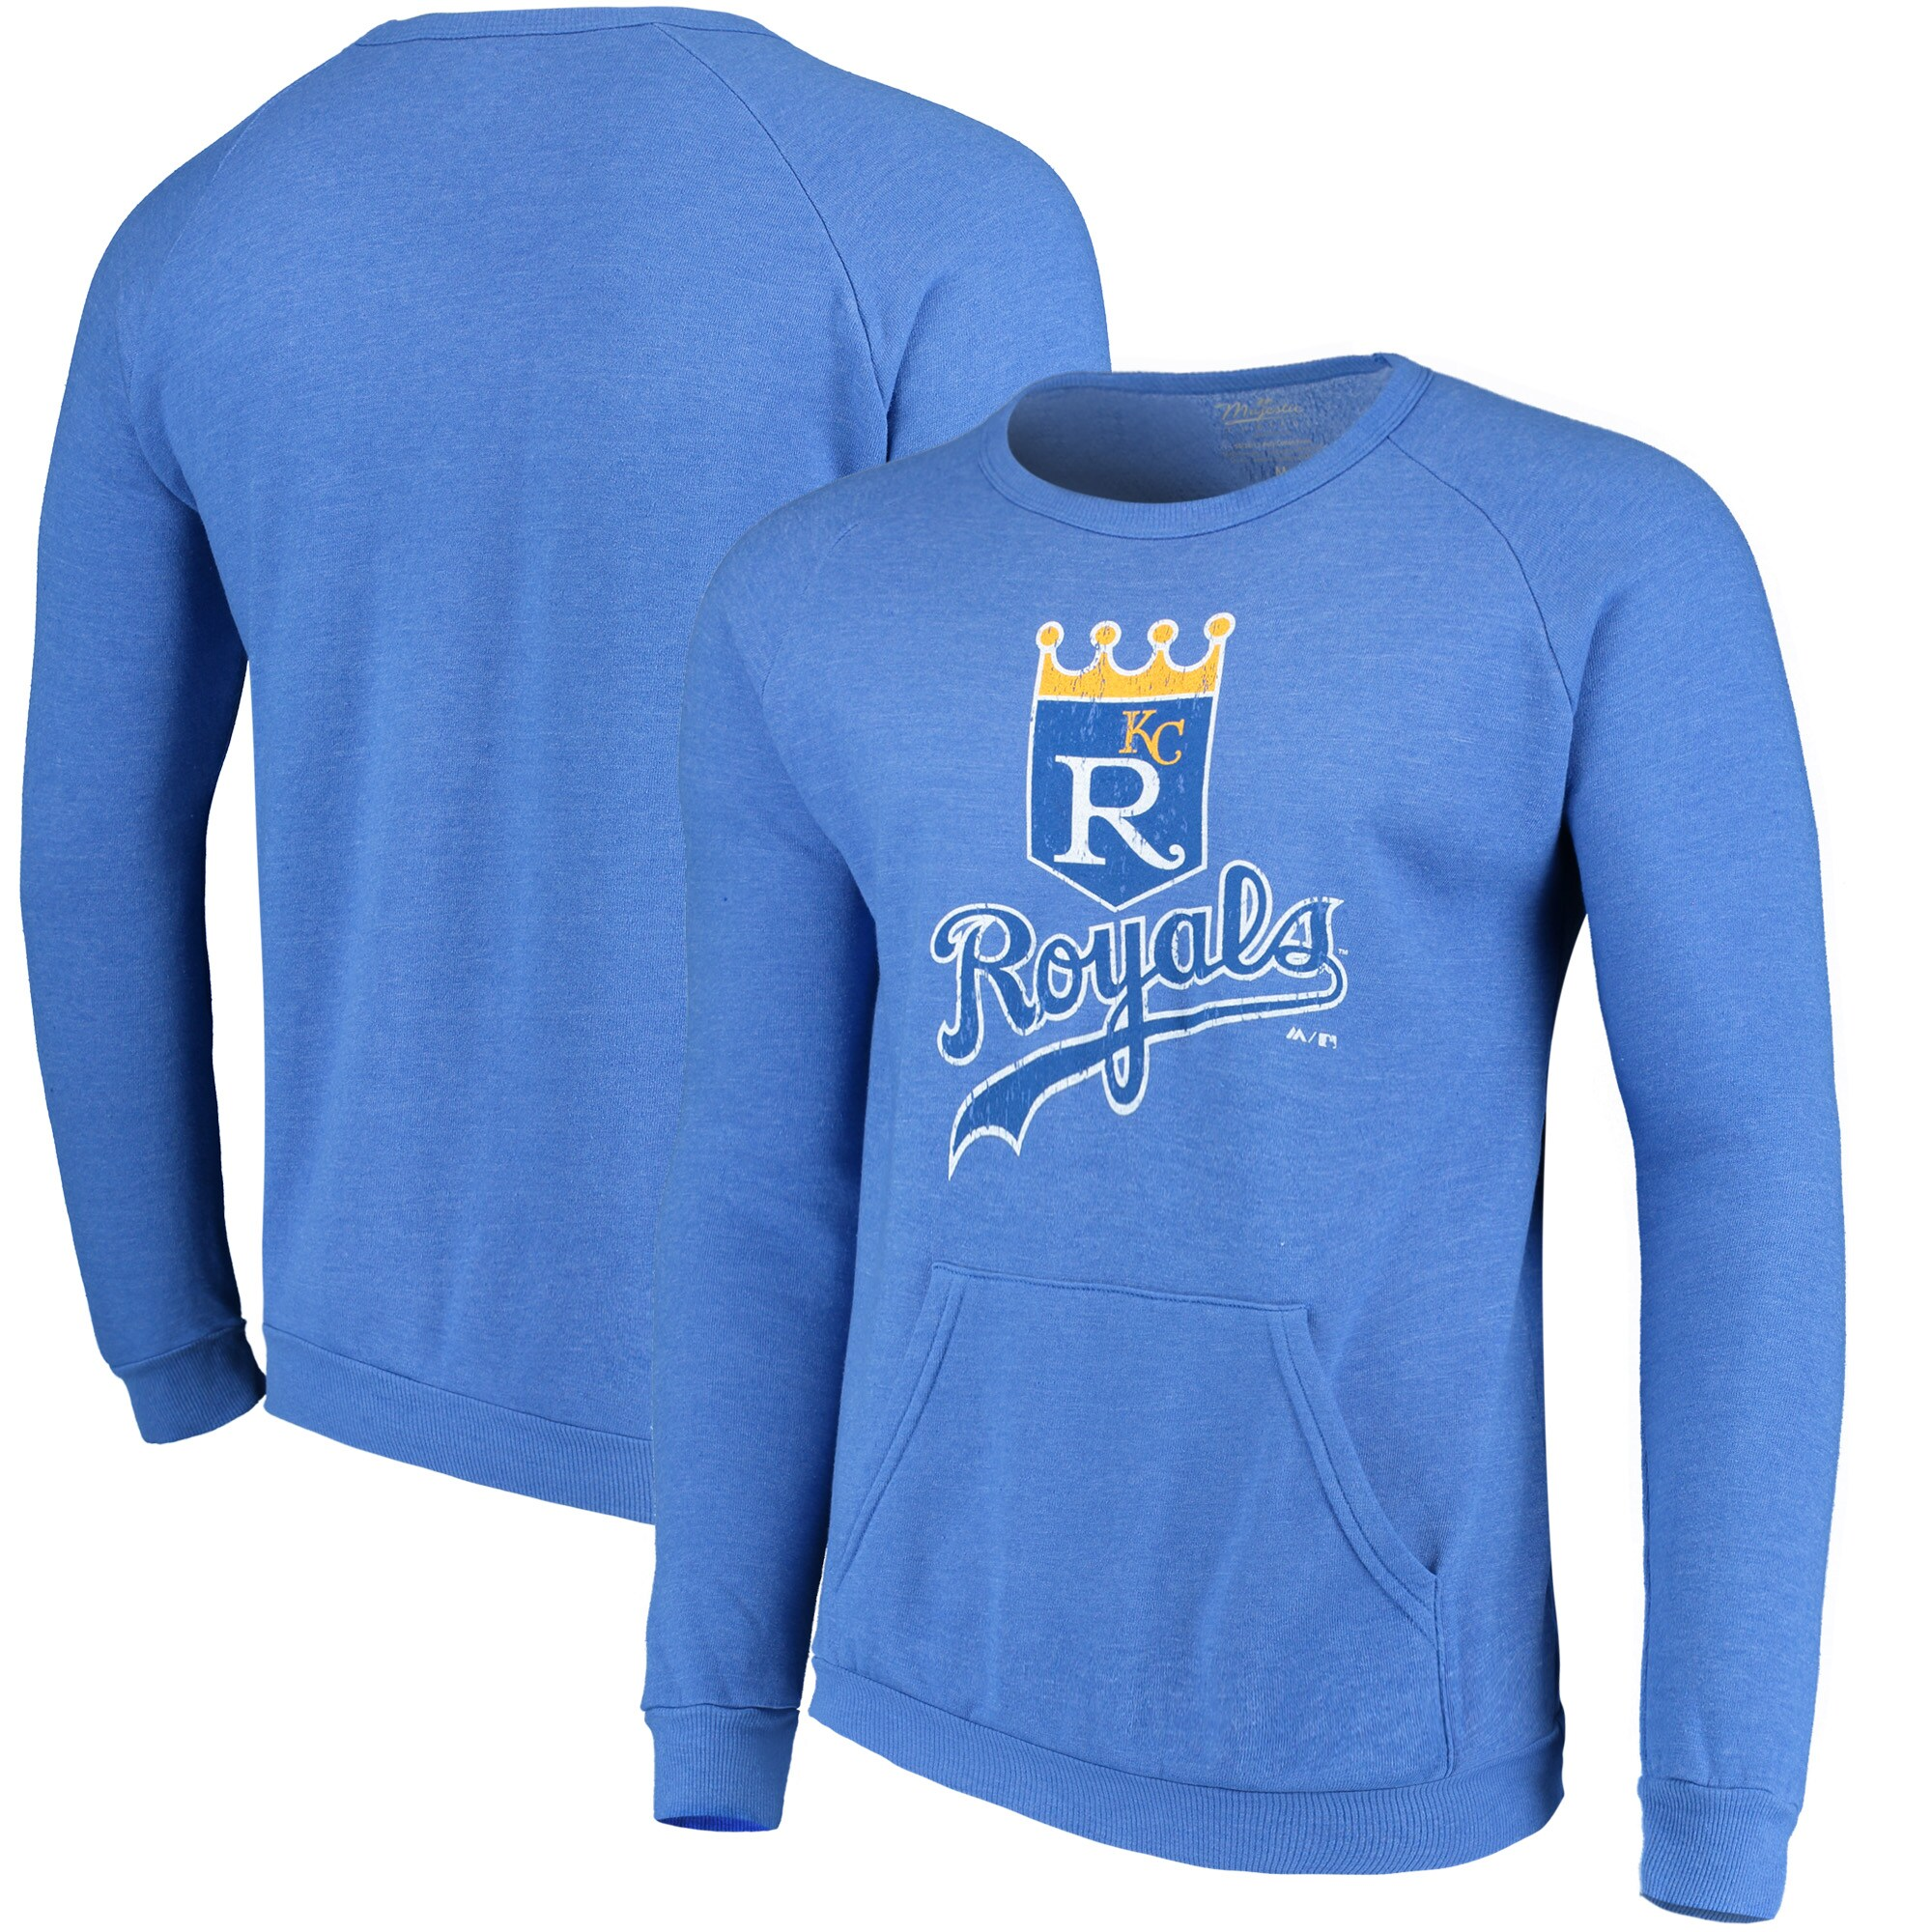 Kansas City Royals Majestic Threads Cooperstown Collection Tri-Blend Pocket Fleece Sweatshirt - Royal